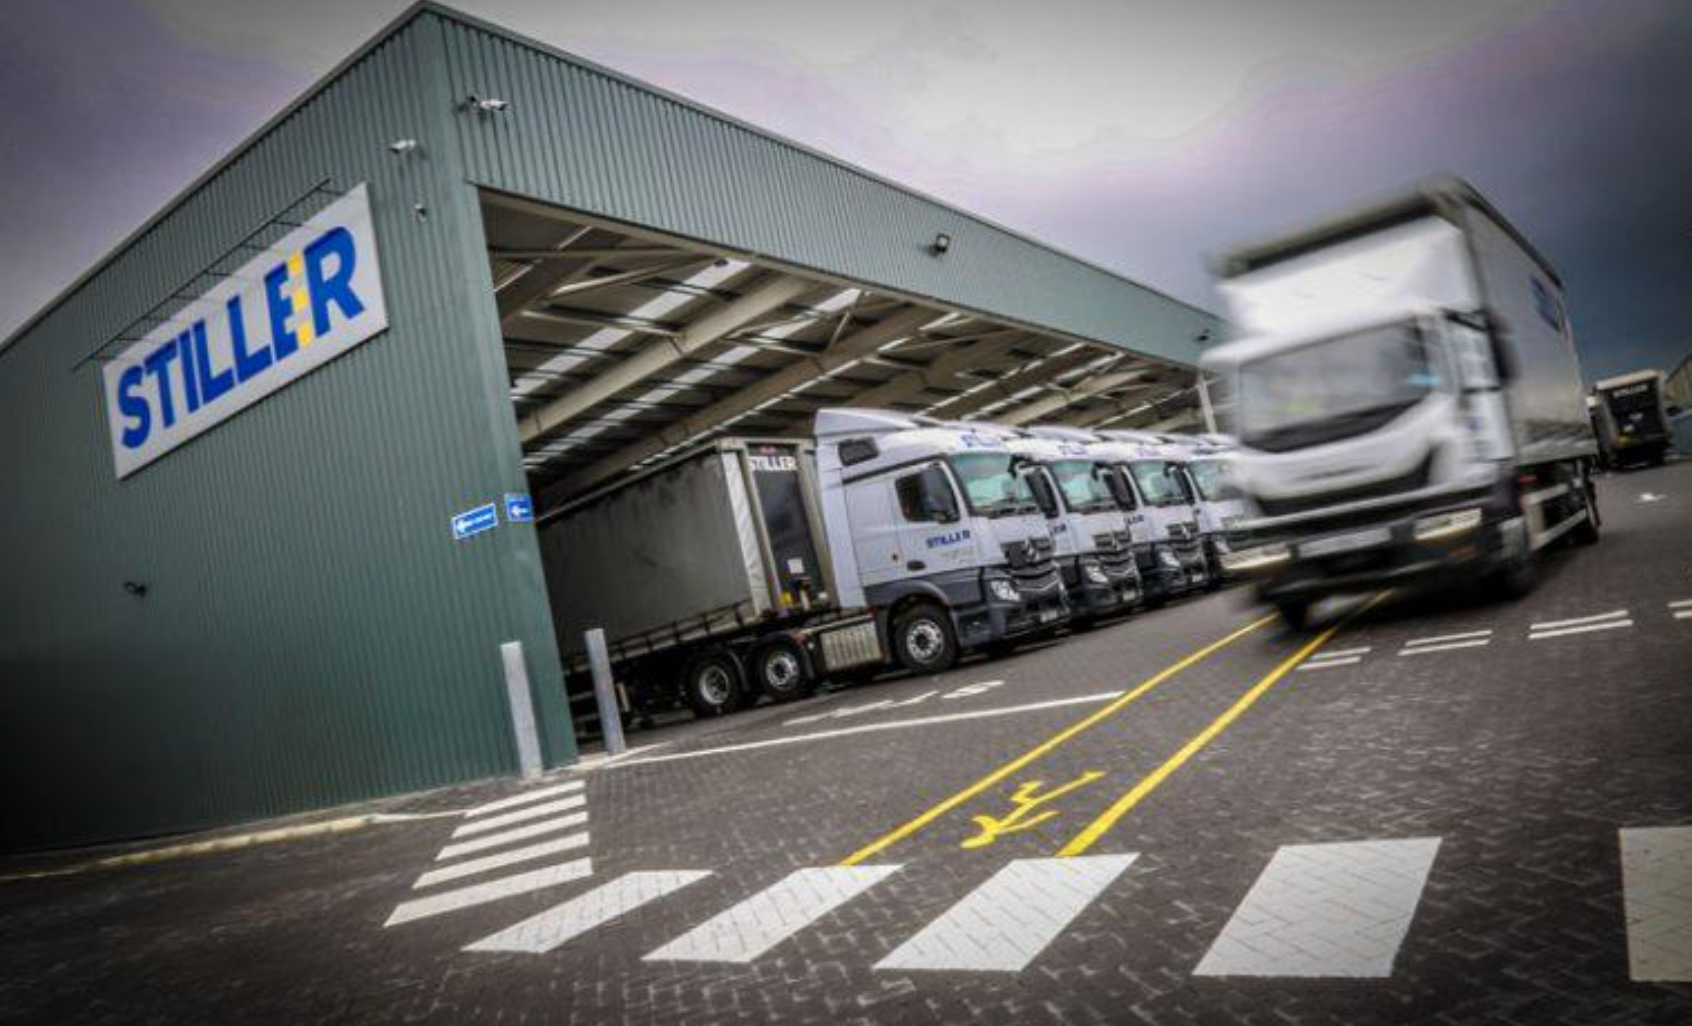 C-TEC CAST XFP addressable fire alarm system specified for a high-tech logistics site